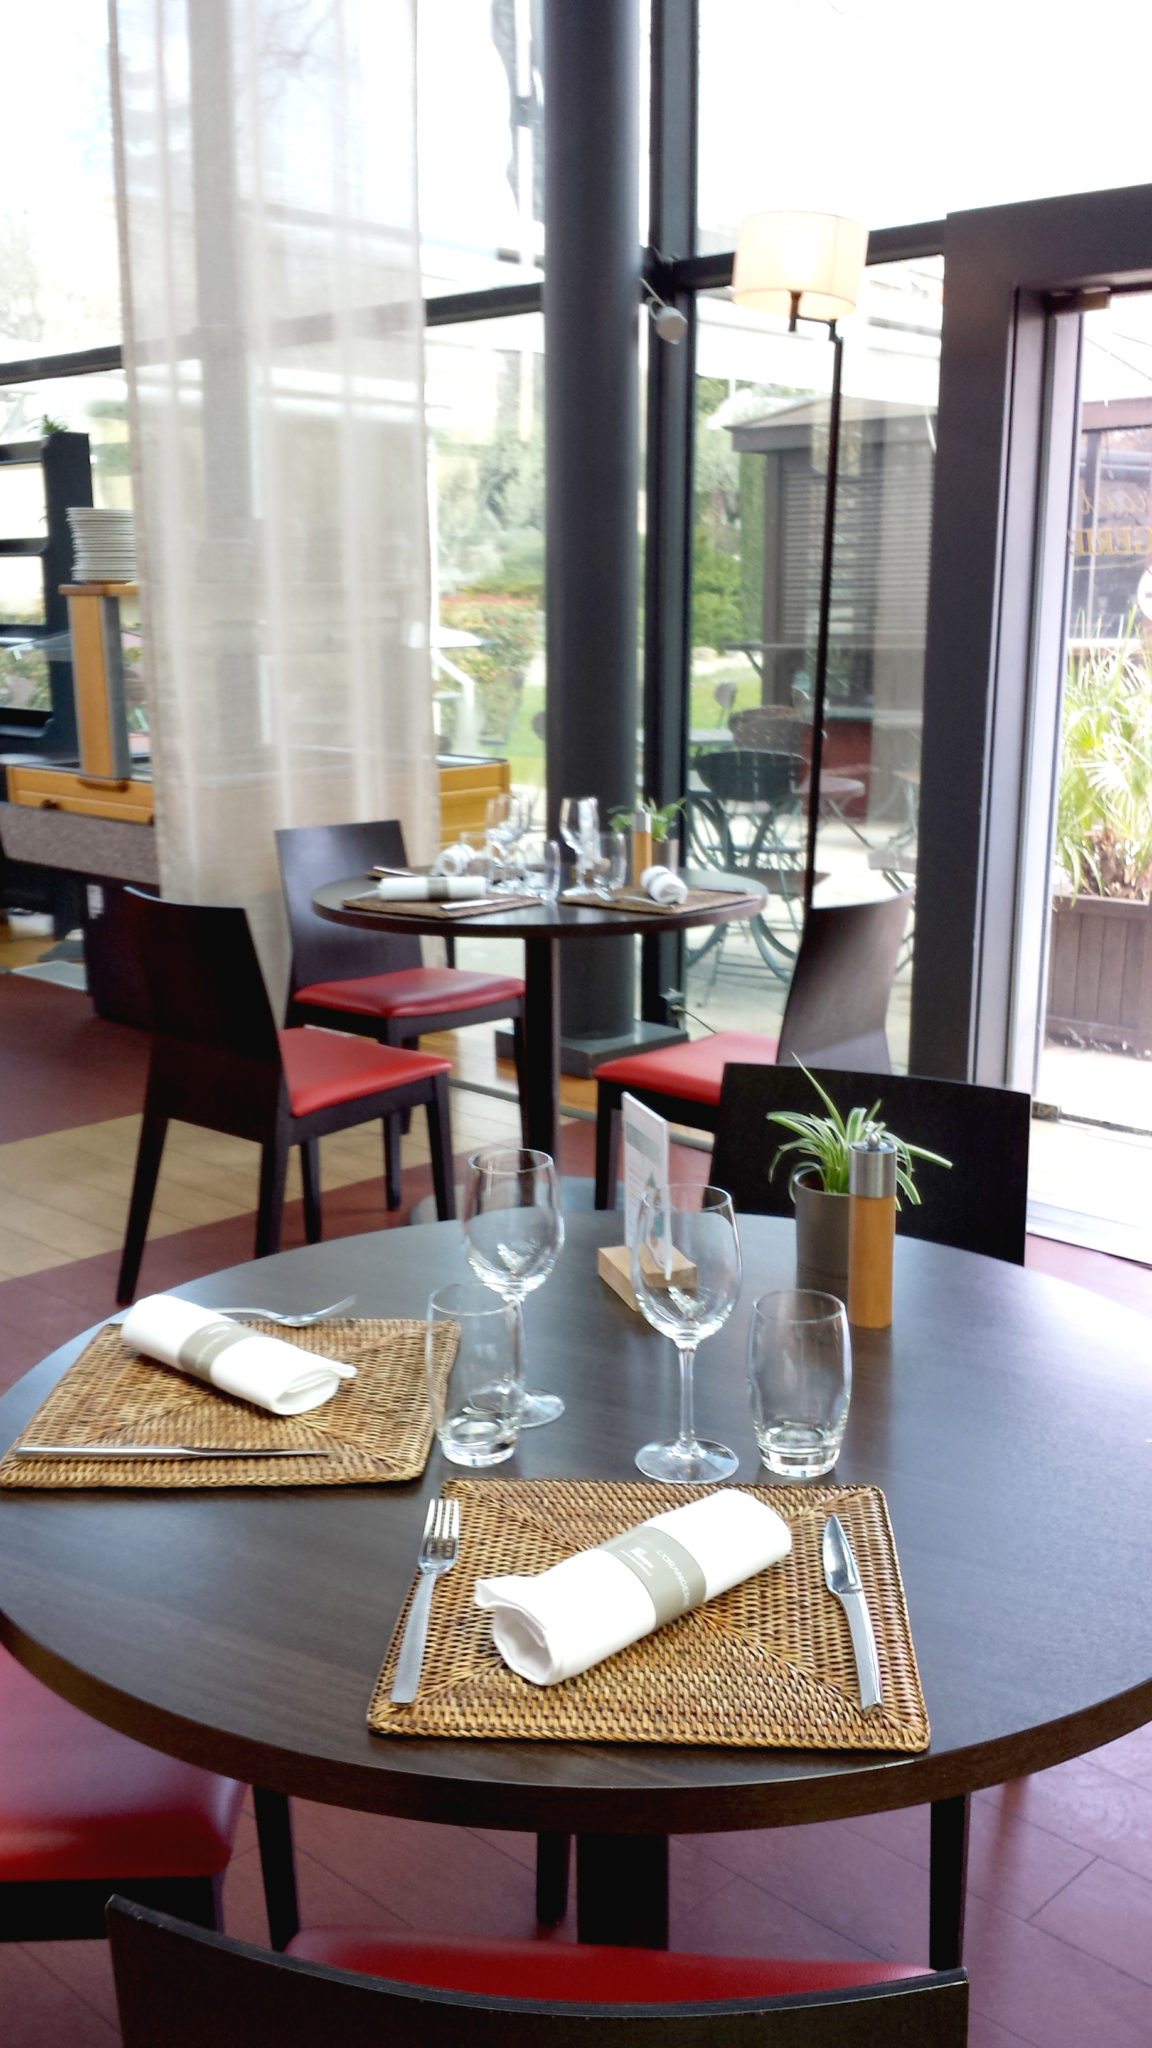 Journee_cocooning_aixenprovence_thermes_sextius_restaurant_orangerie